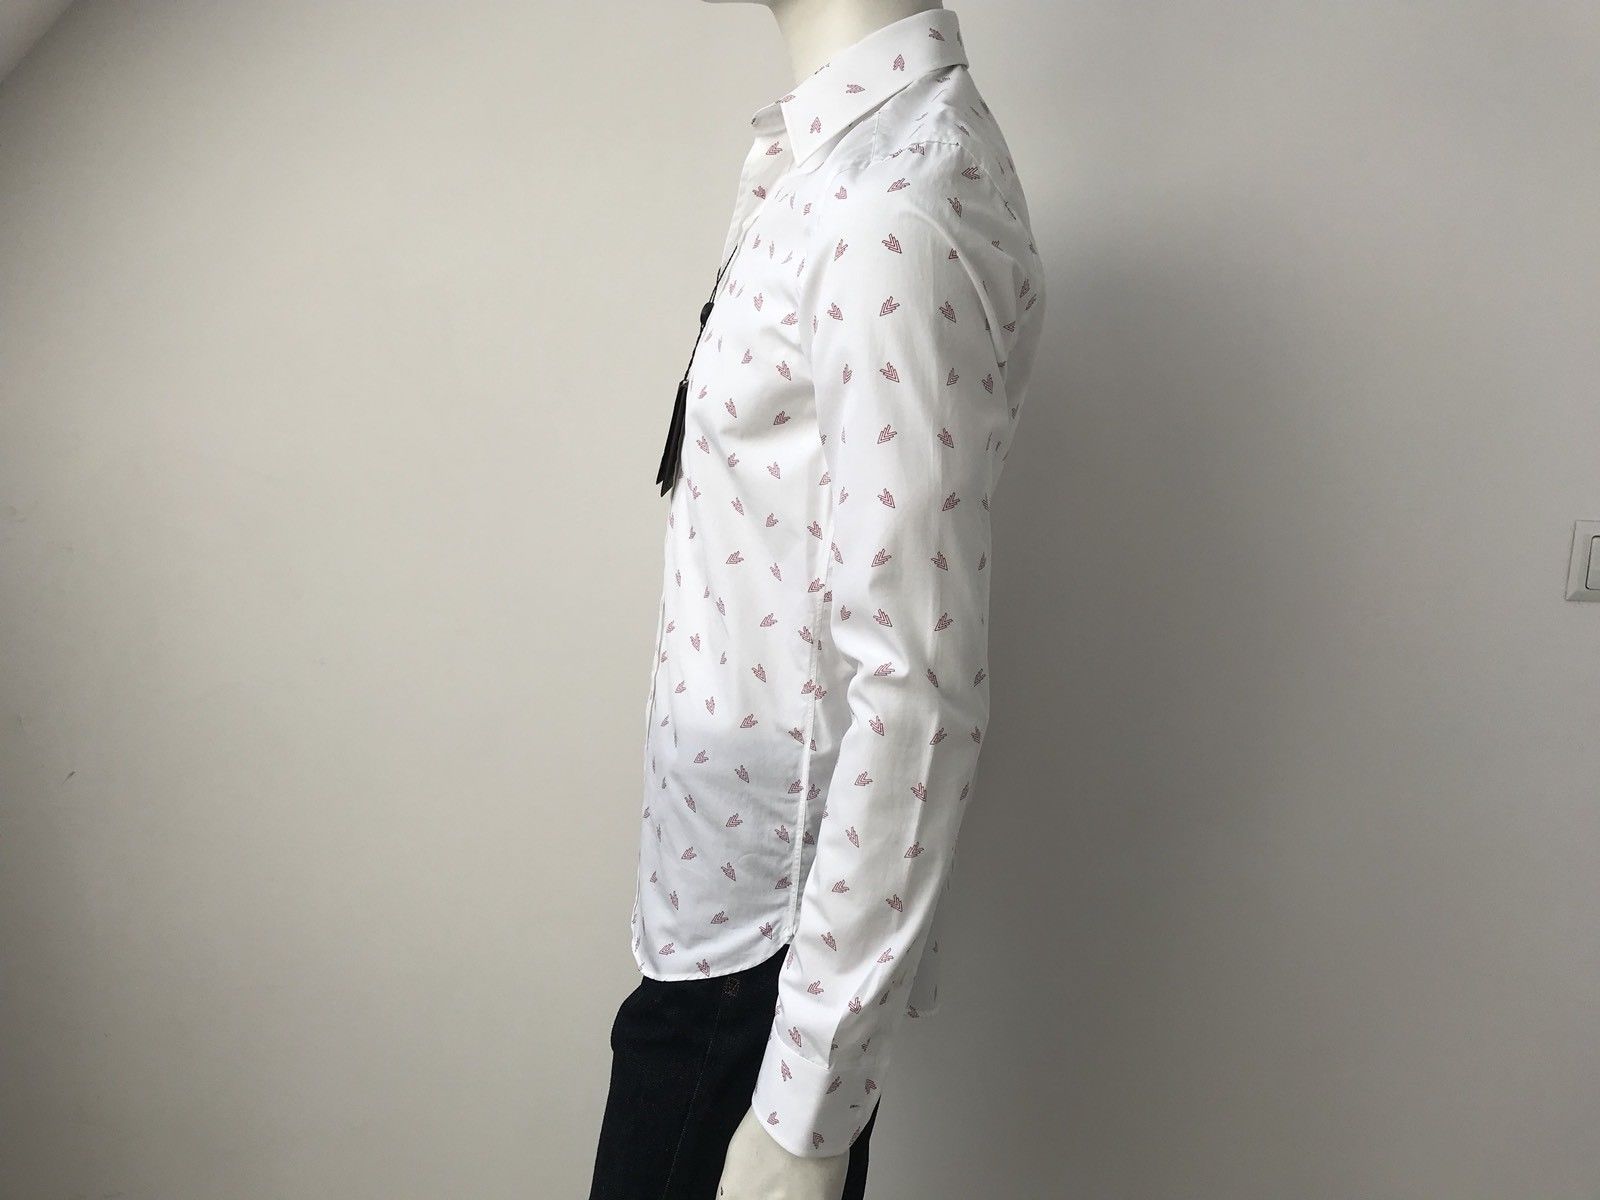 ae71c2165eda VVV Printed Shirt – Luxuria   Co.